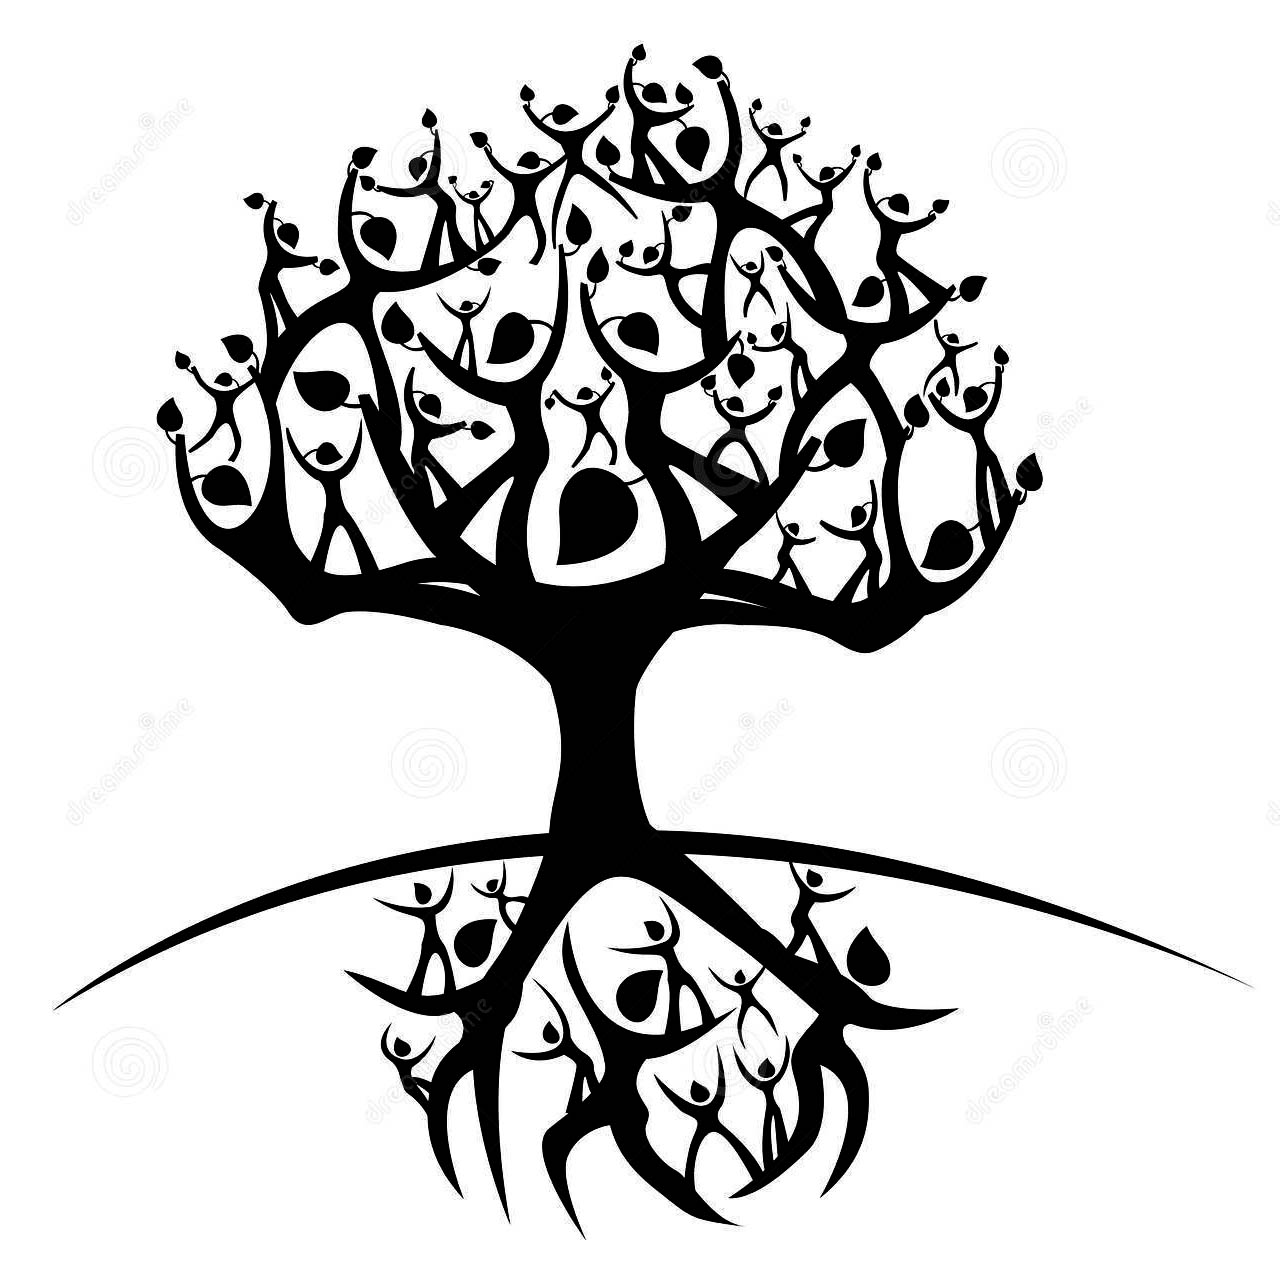 1280x1266 Tree Of Life History And Research. Celtic Tree Of Life And How It